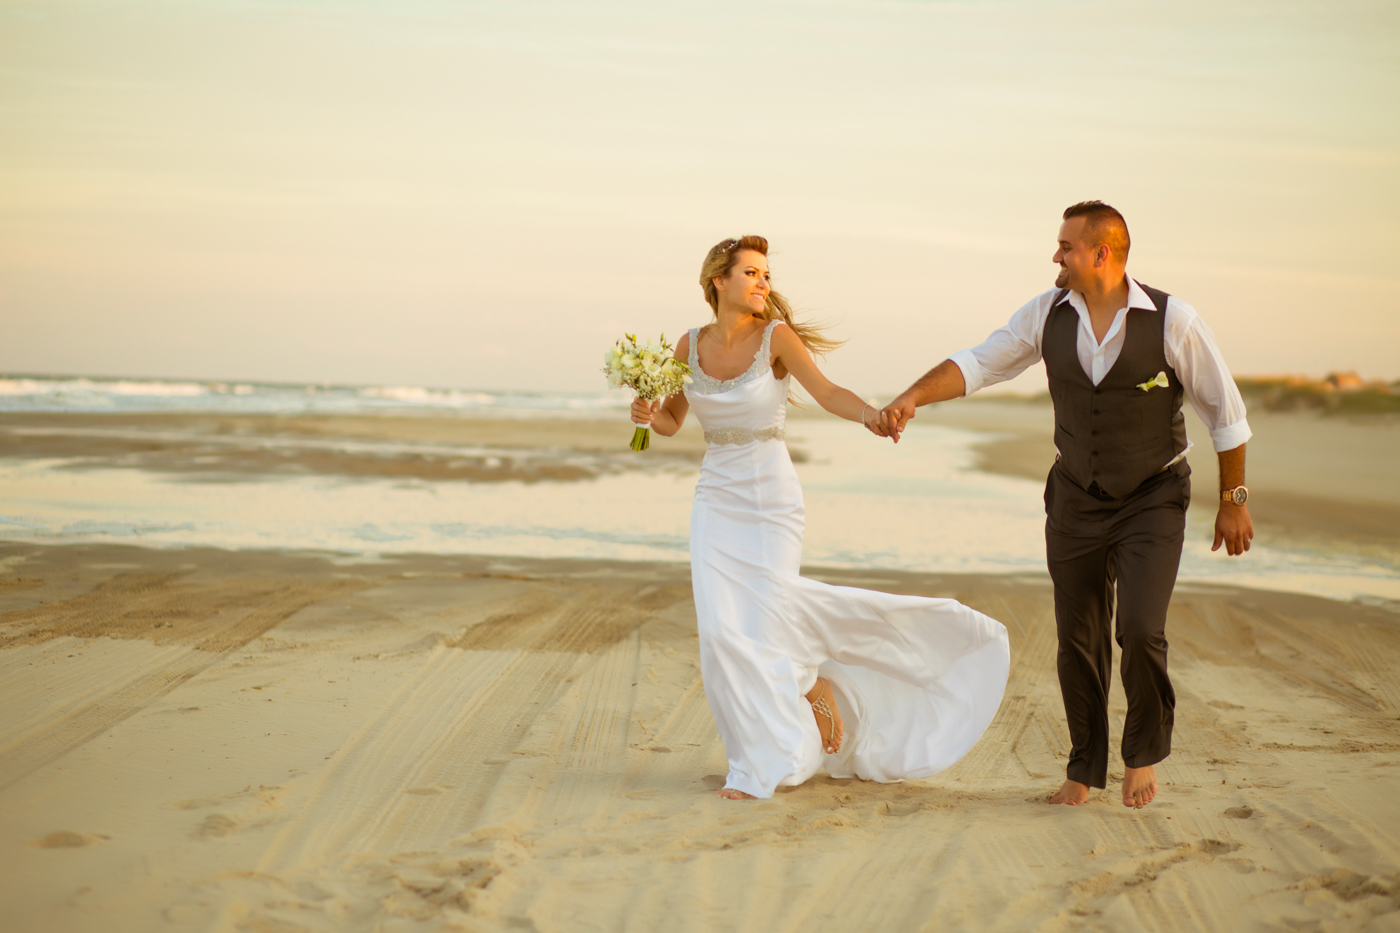 Beautiful Brazilian Beach Wedding North Carolina-Ksenia-Pro-Photography-54